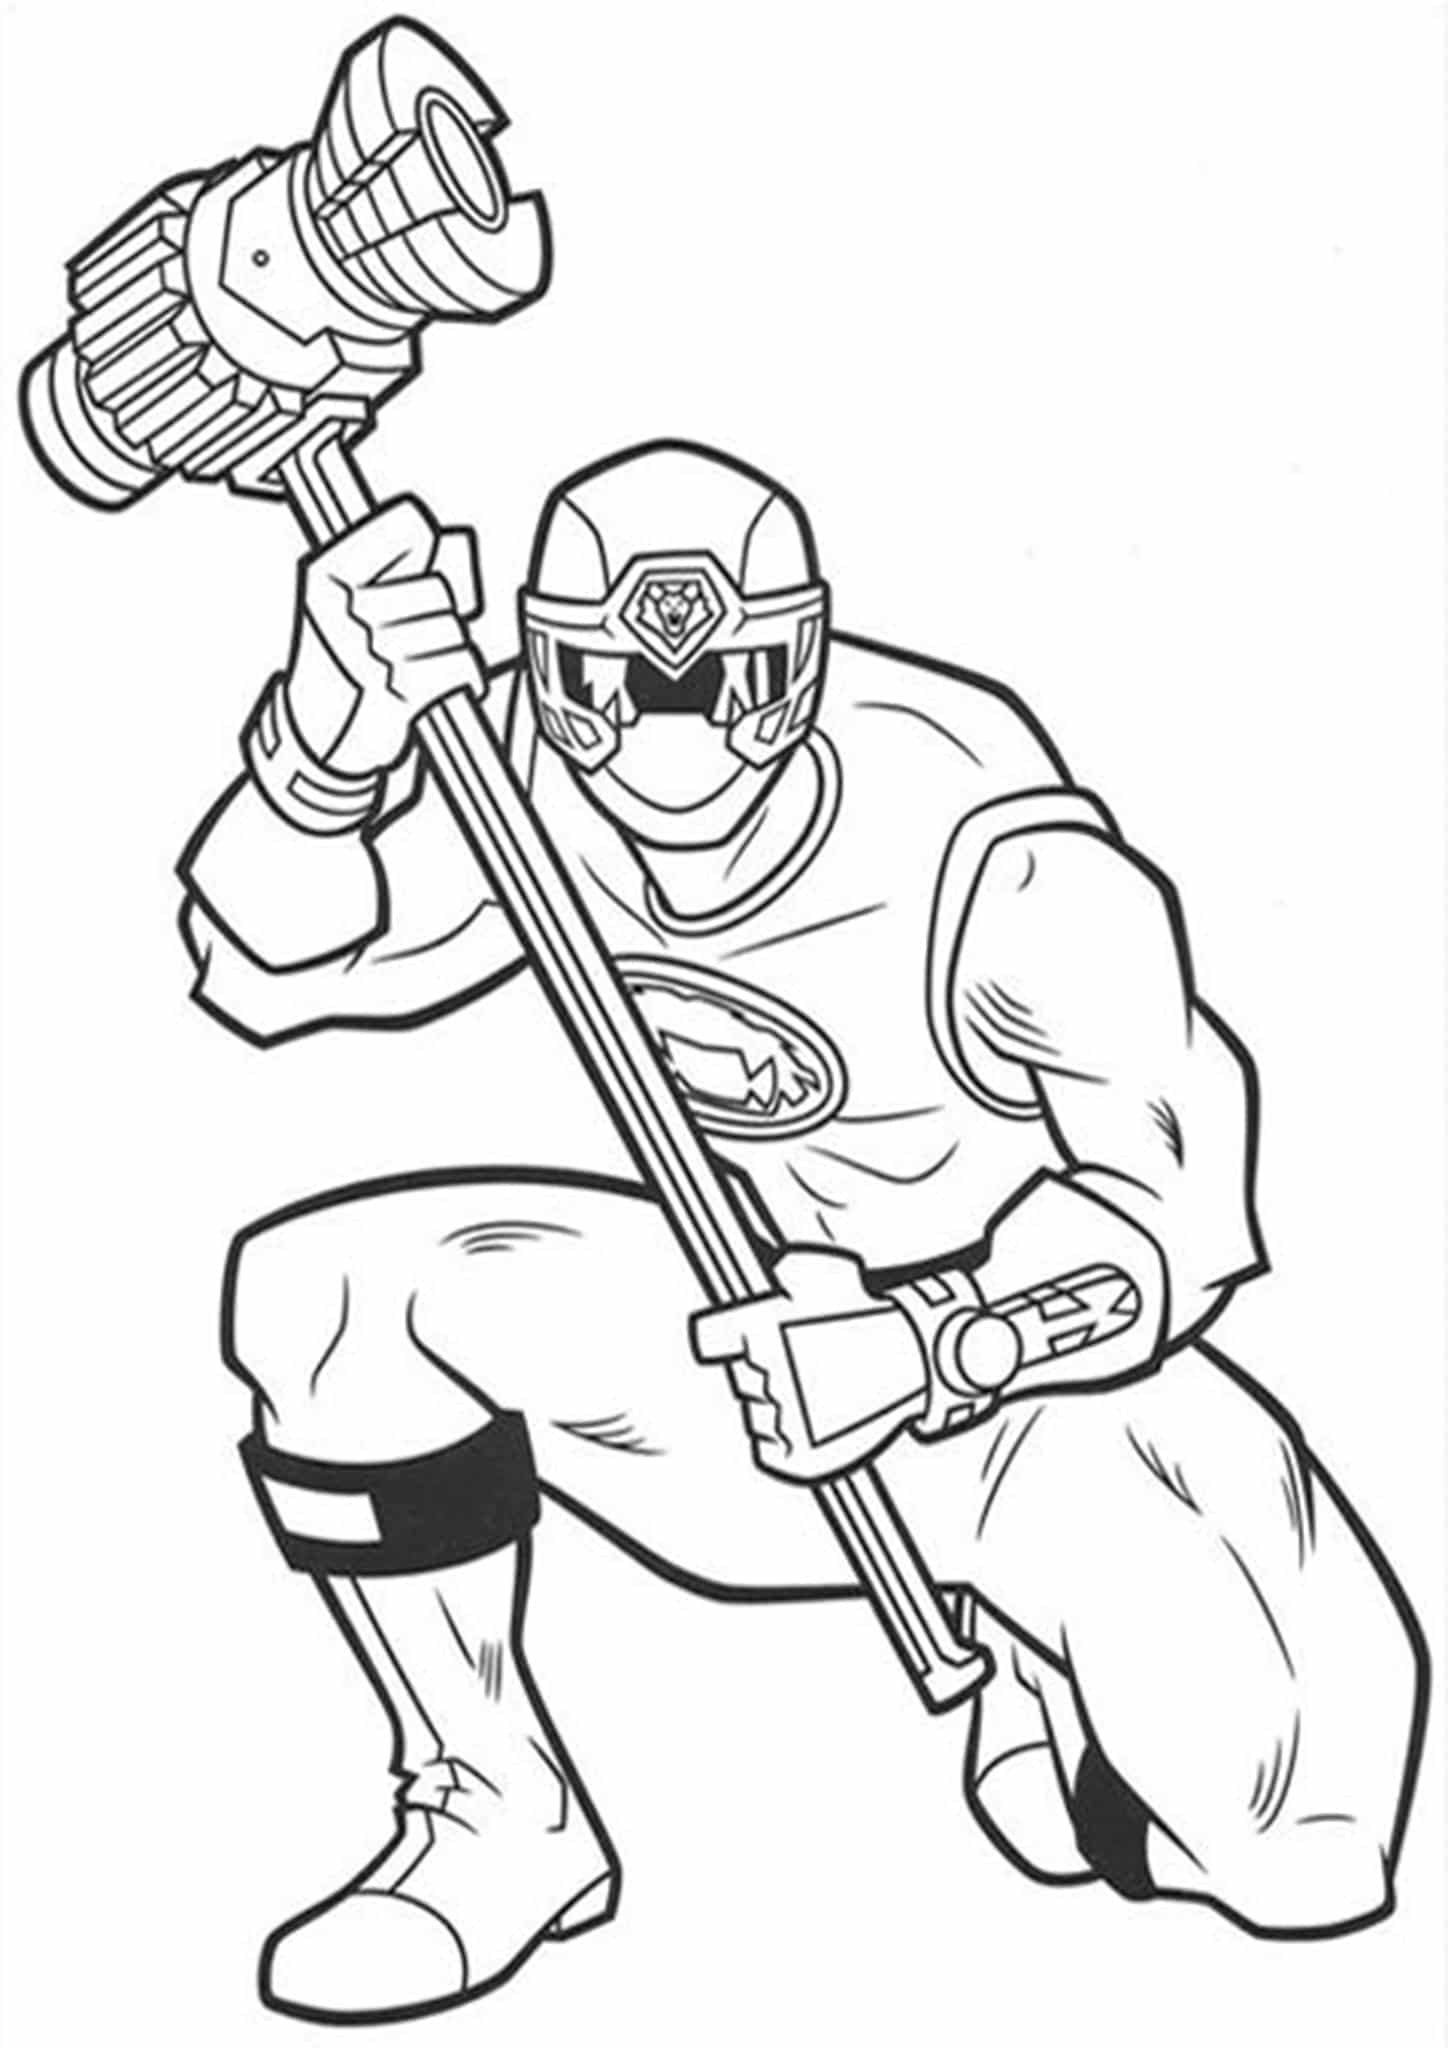 power rangers printable coloring pages power rangers white ranger free printable coloring page rangers printable power pages coloring